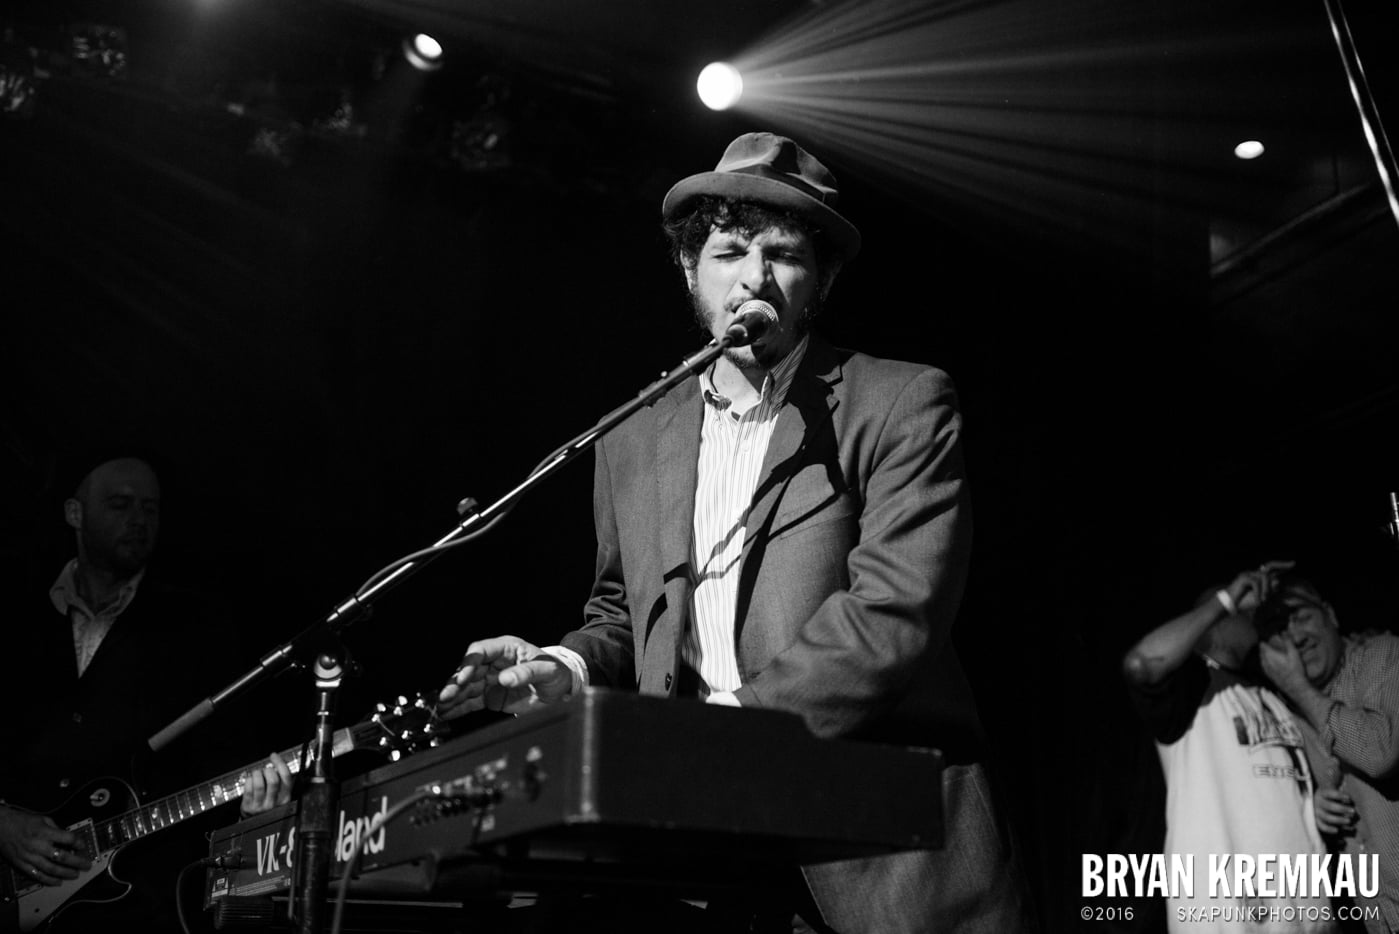 The Slackers @ Apple Stomp: Day 2, Irving Plaza, NYC - June 1st 2013 - Bryan Kremkau (23)